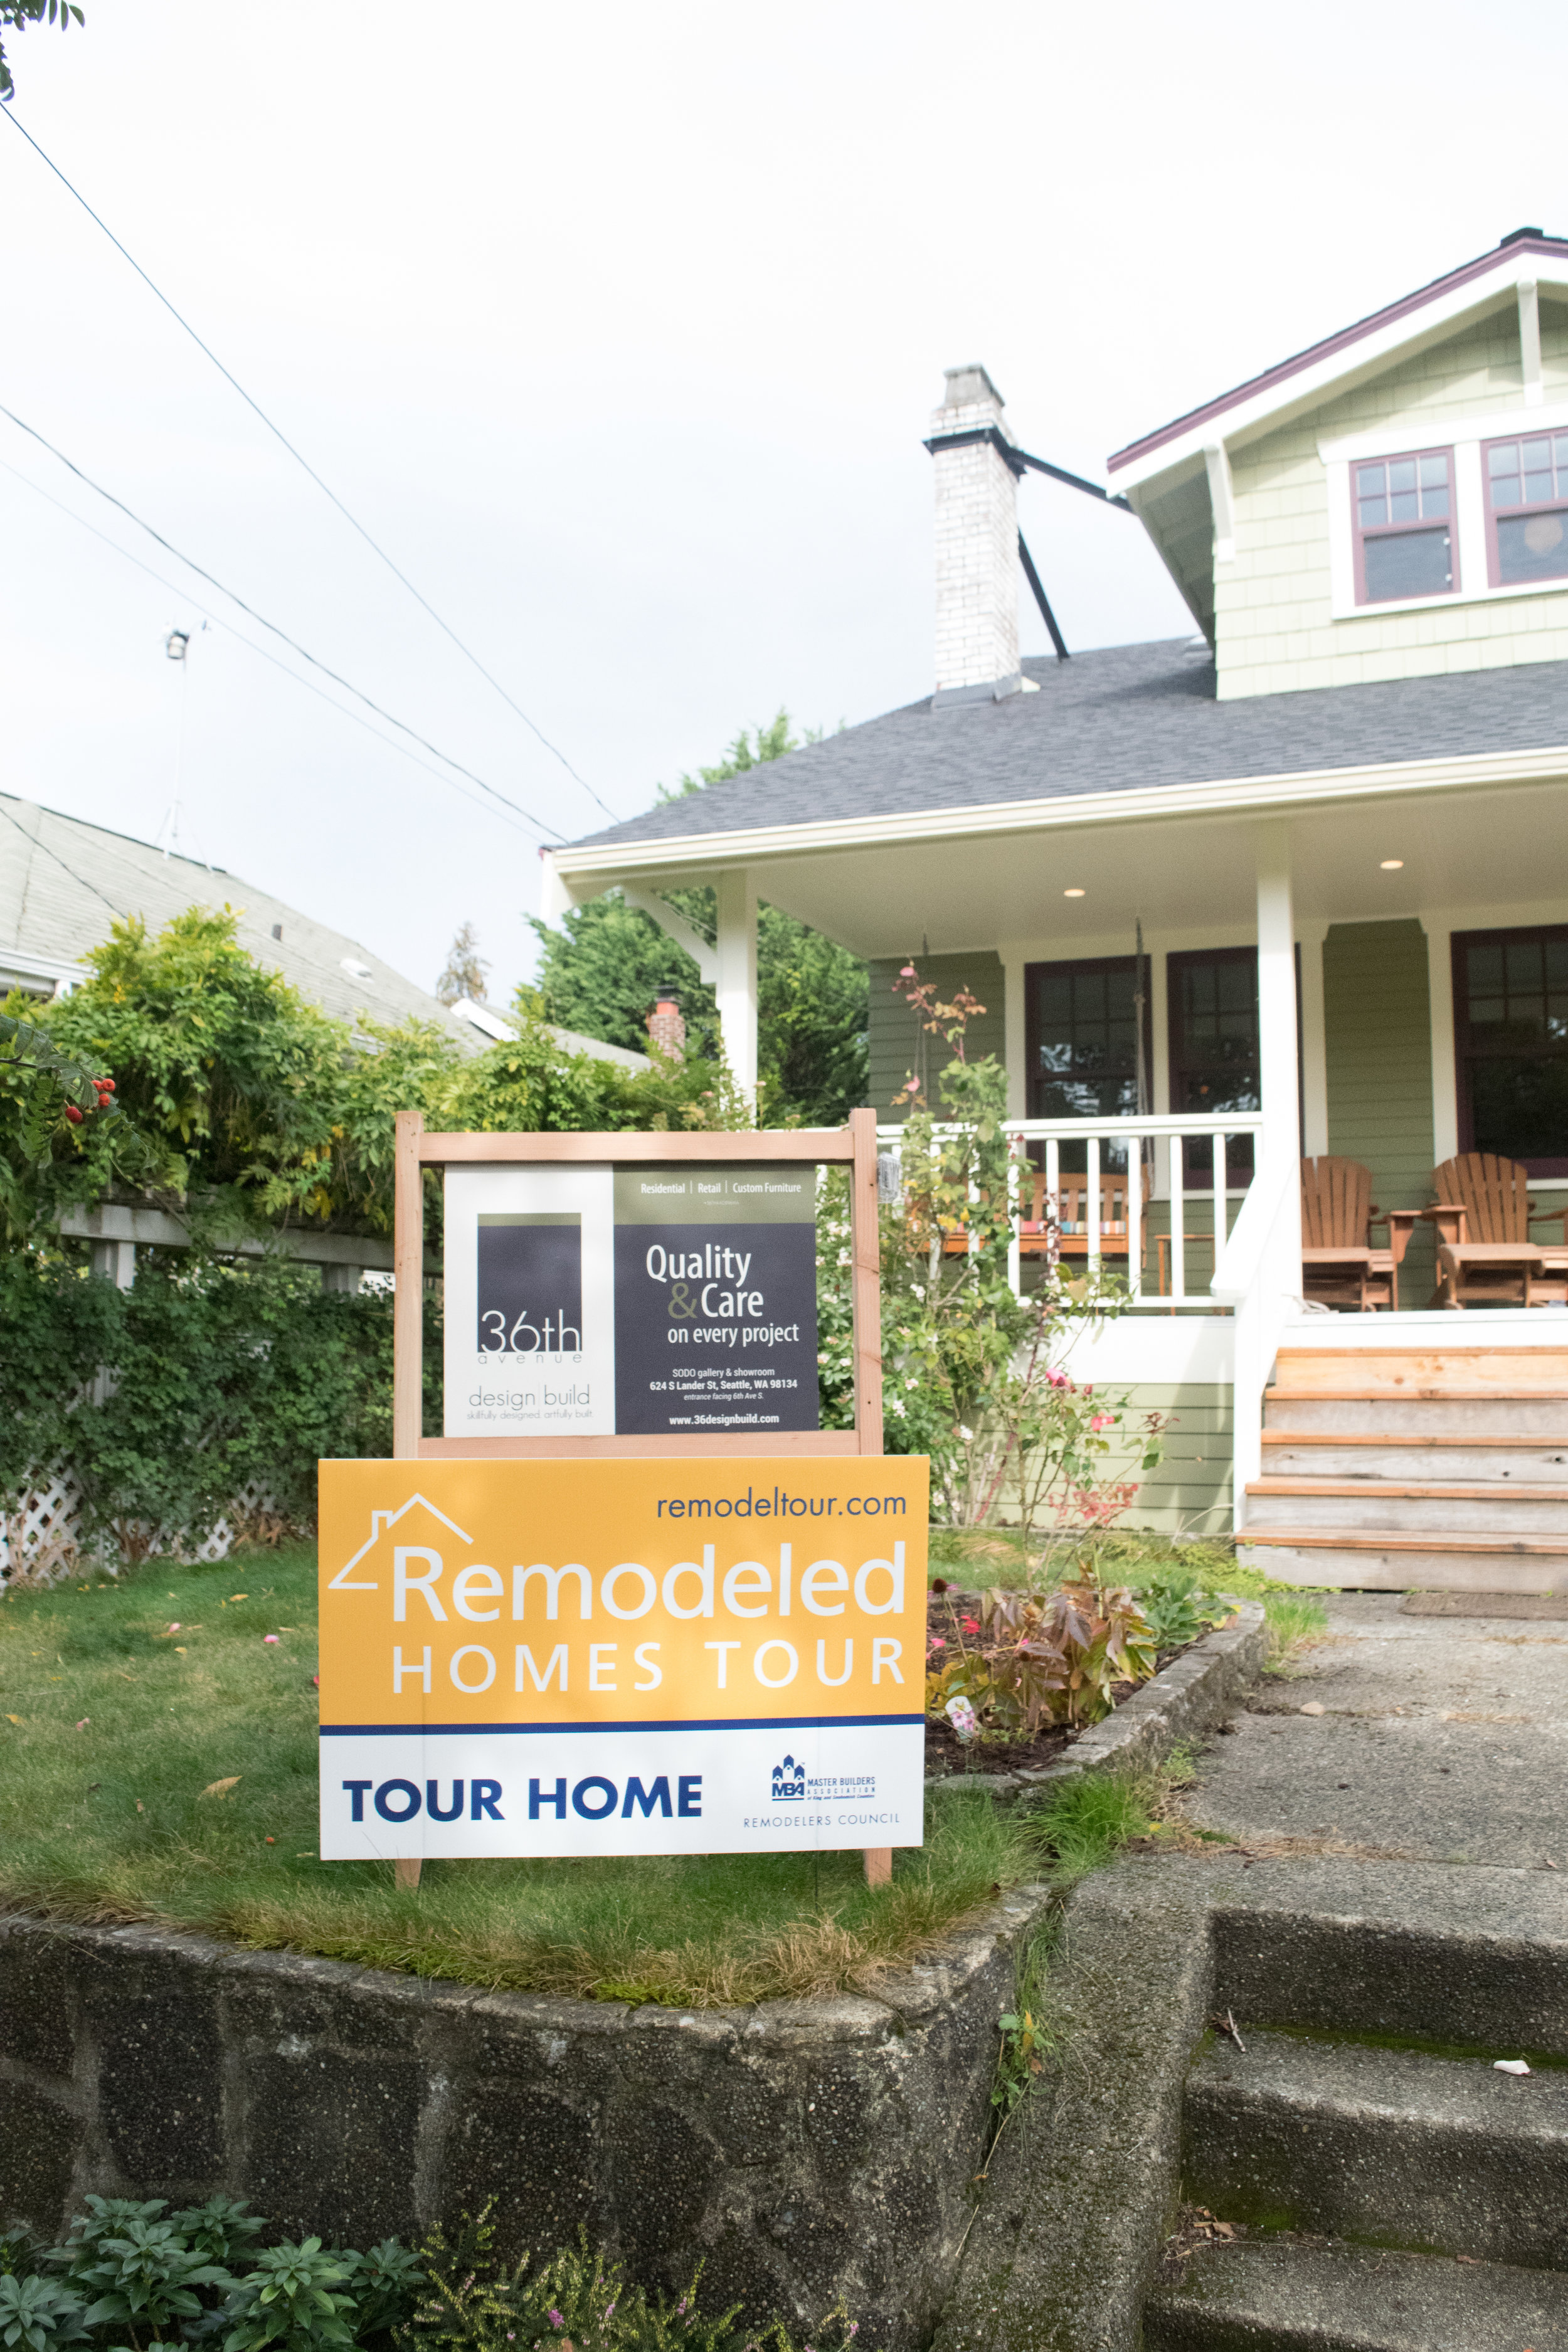 Remodeled Homes Tour